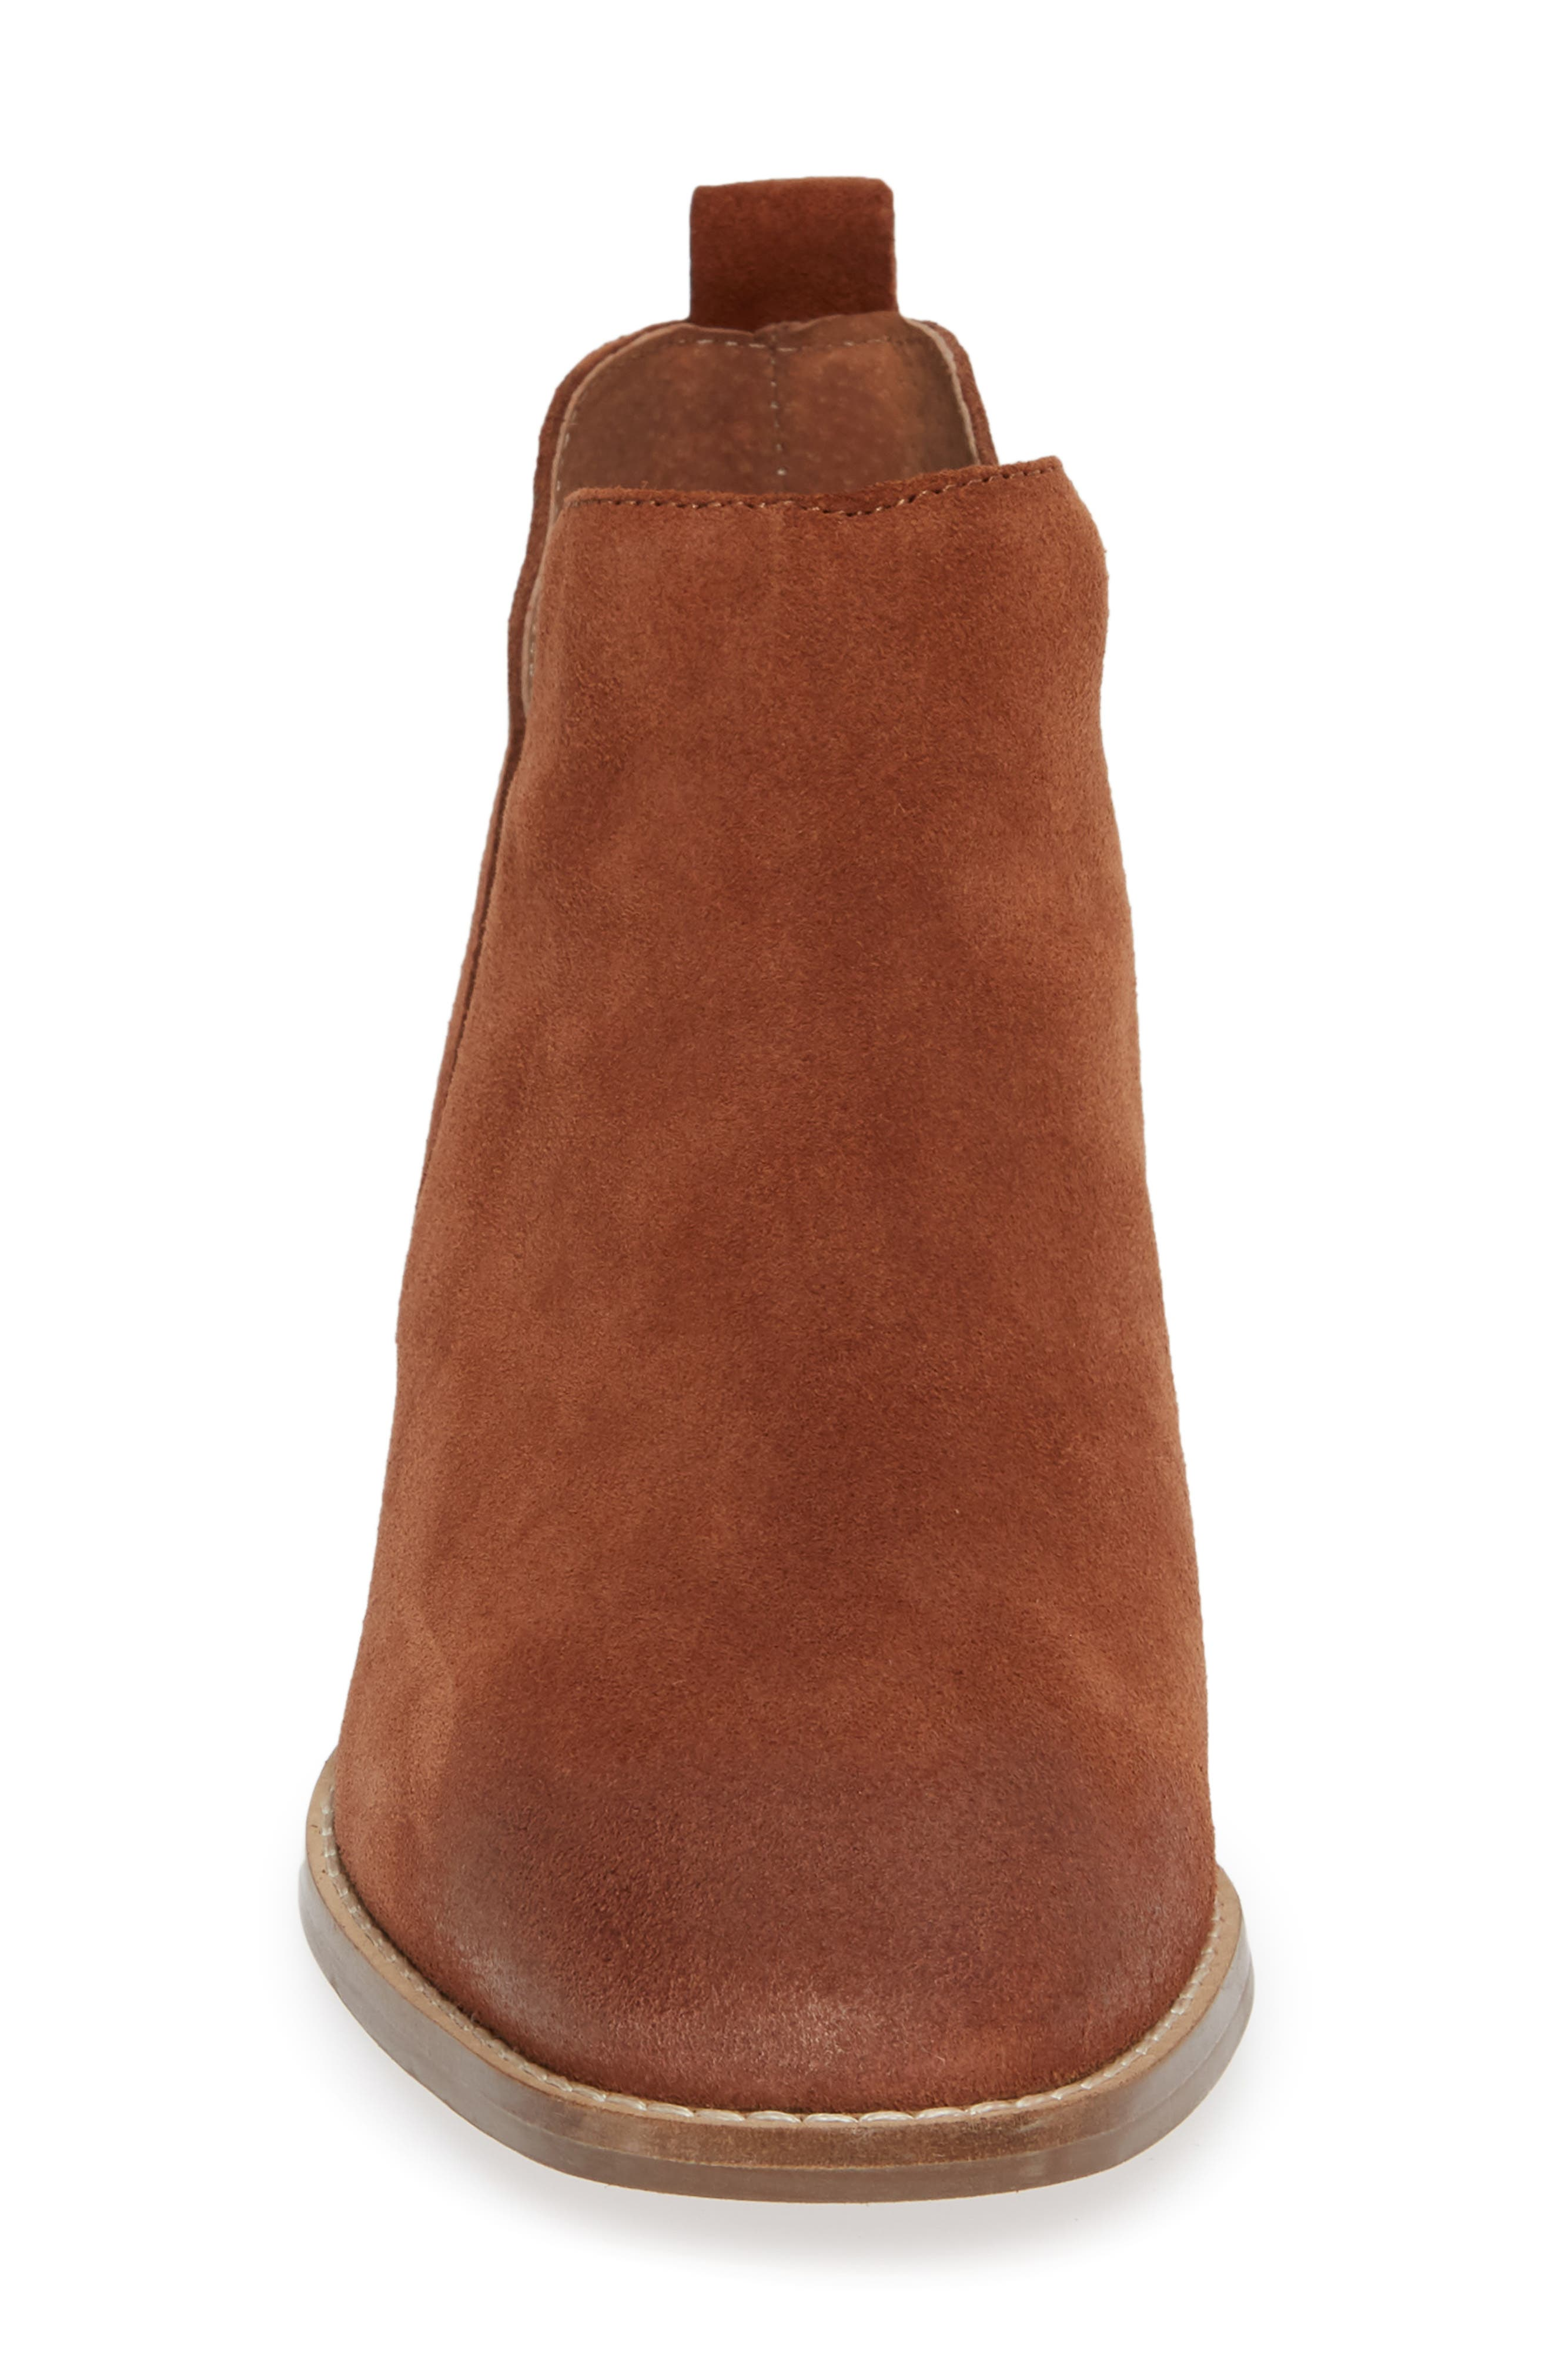 Offstage Boot,                             Alternate thumbnail 4, color,                             COGNAC SUEDE